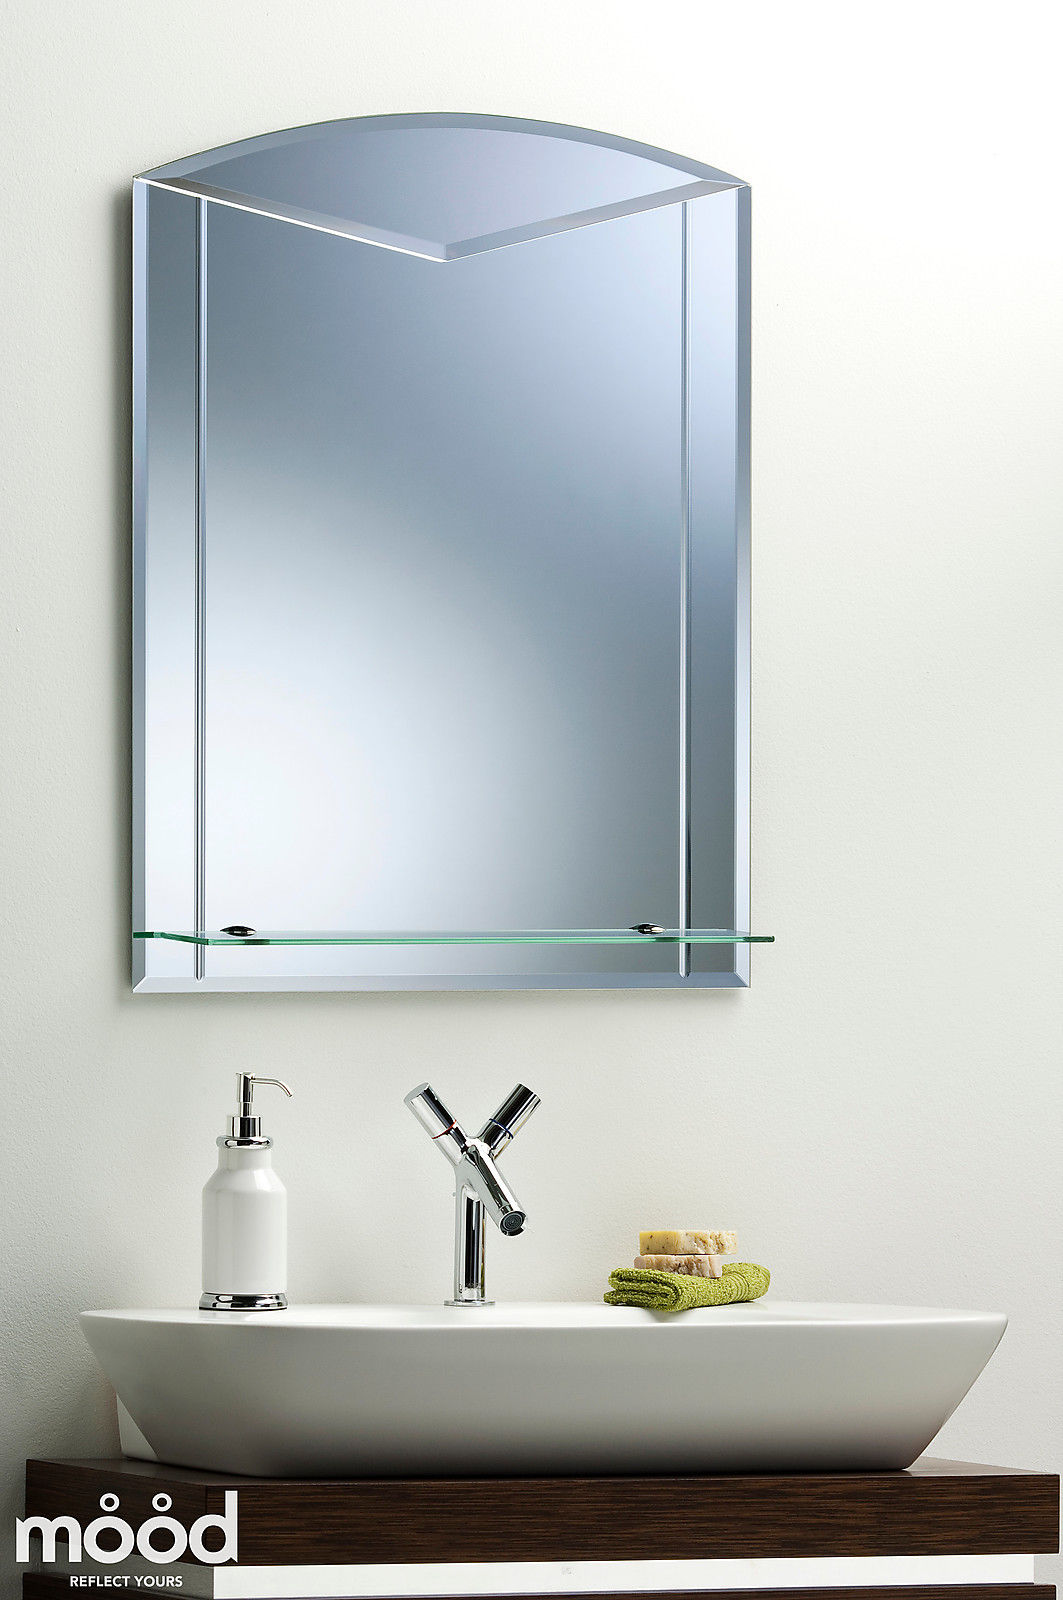 Unique arch bathroom wall mirror with shelf etched detail plain large 80x60 ebay Neue design bathroom mirror